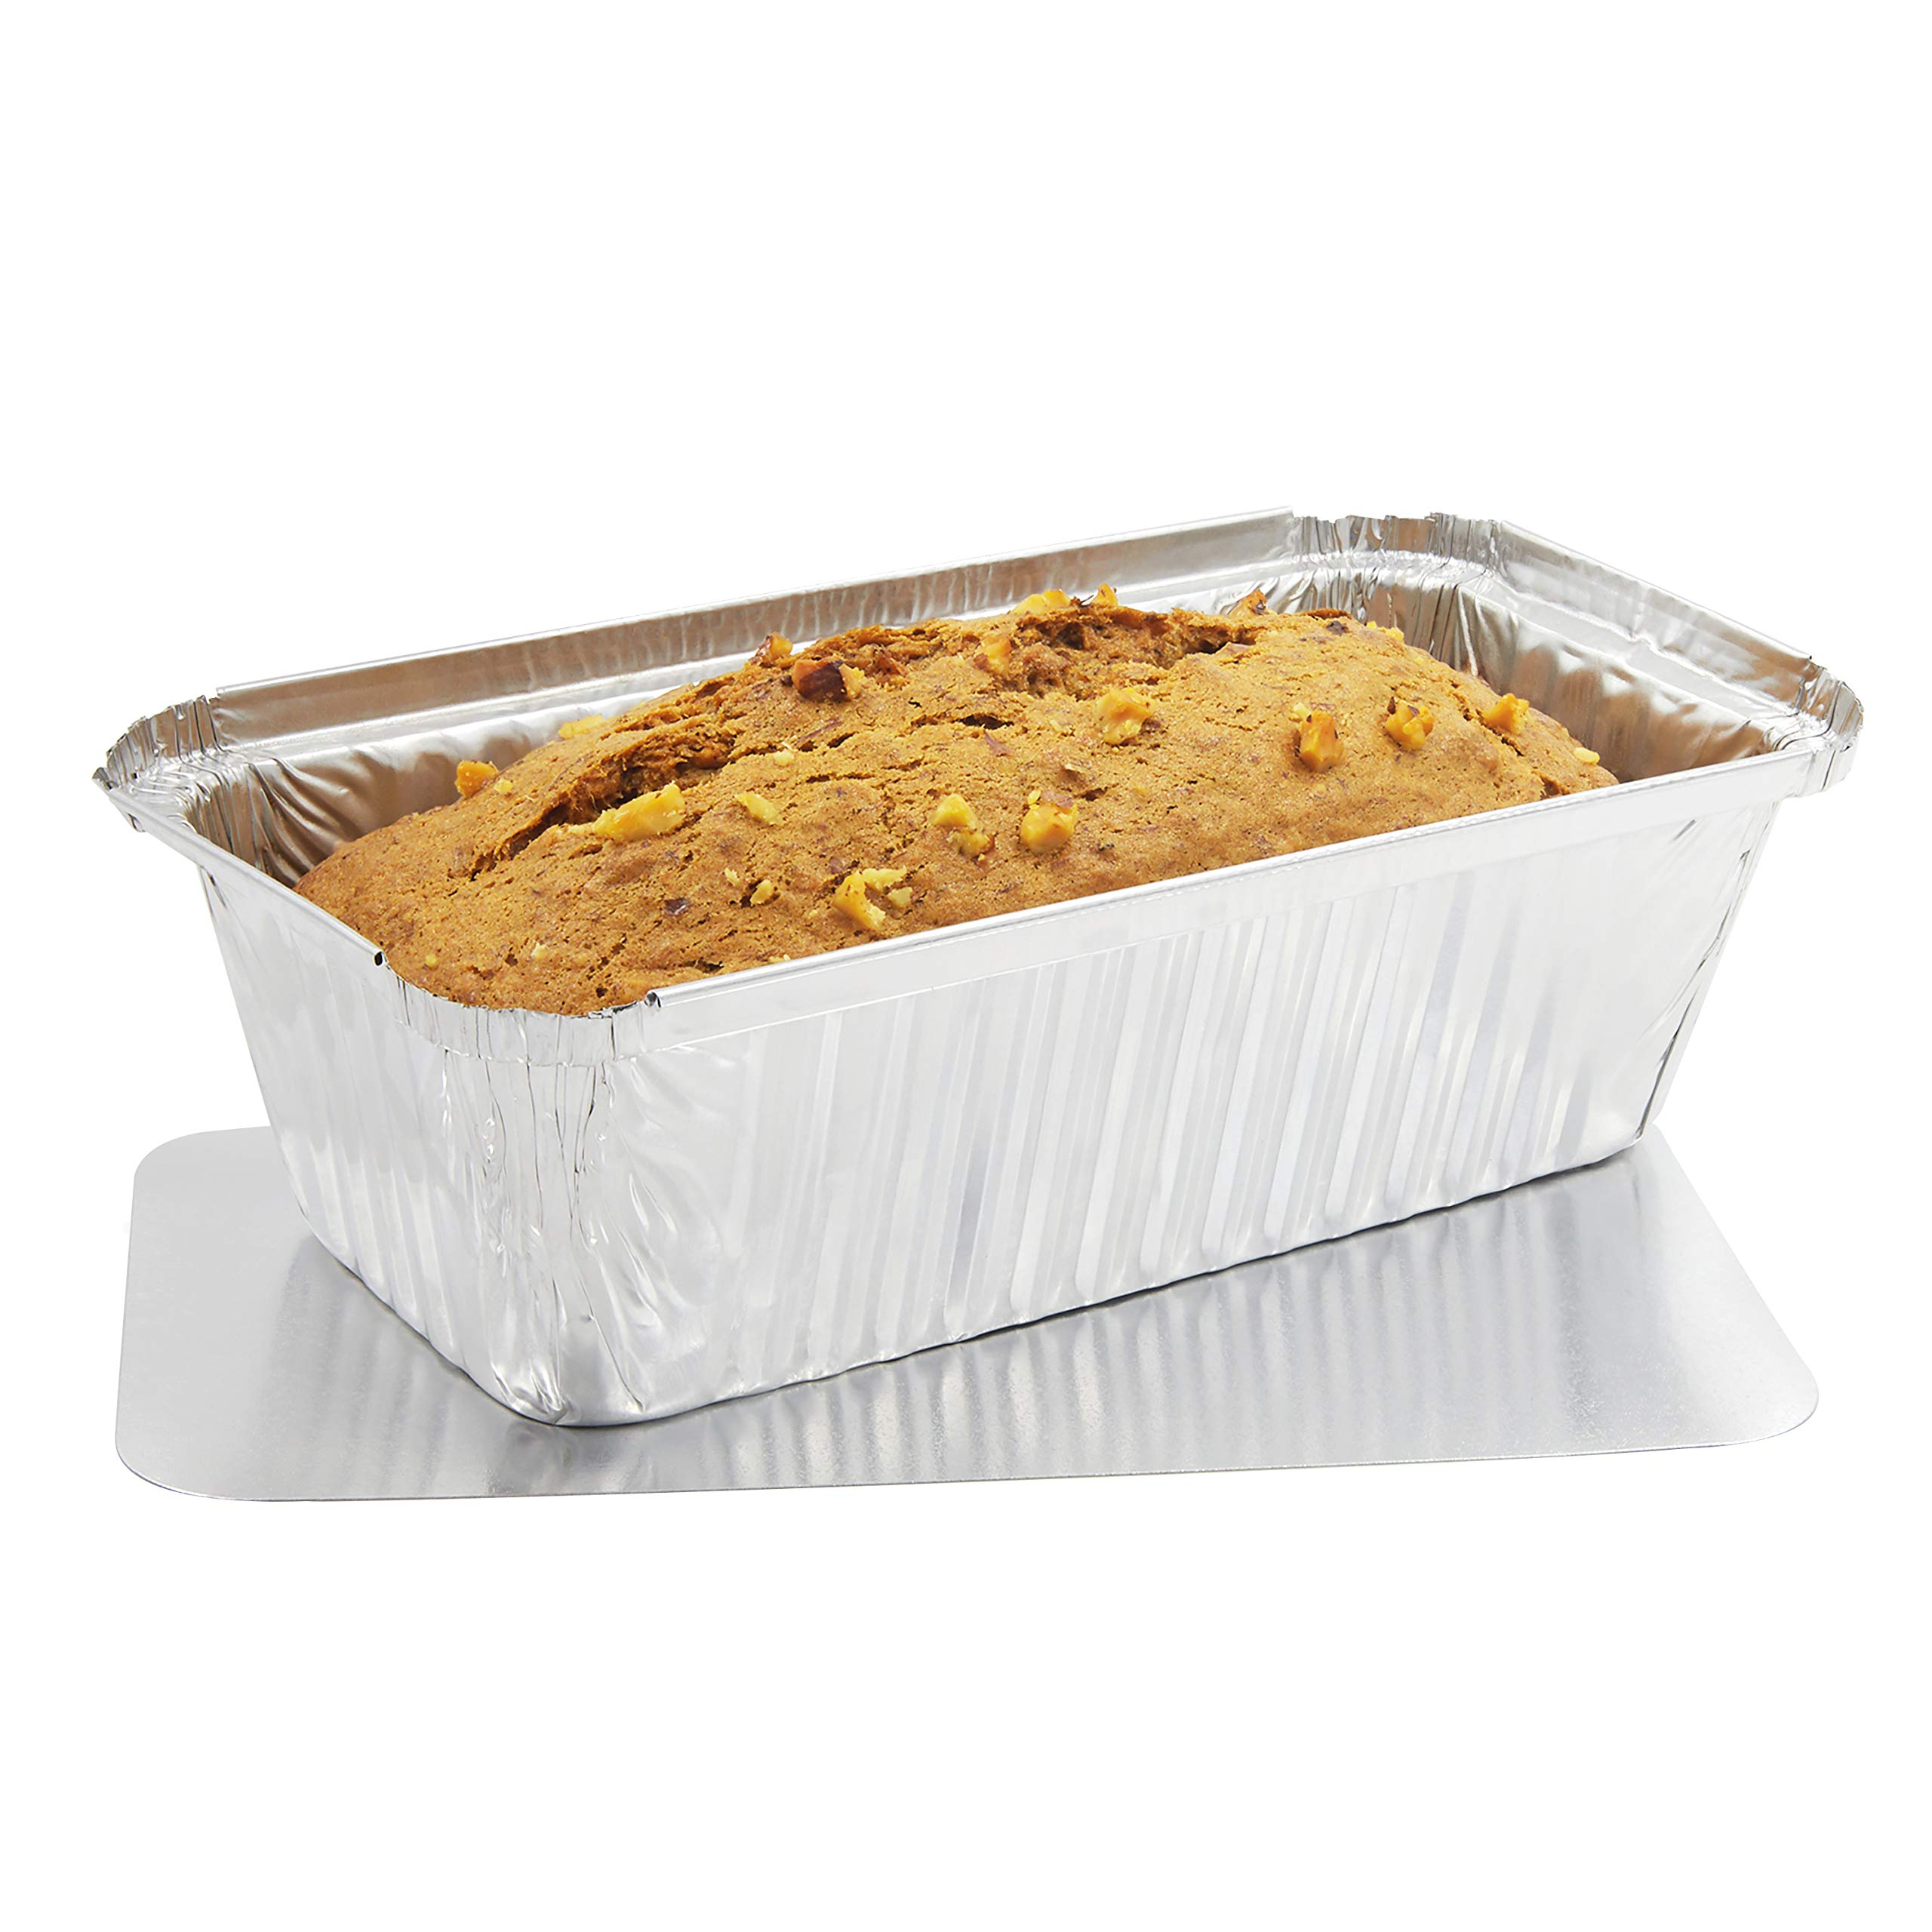 Juvale Loaf Pans with Lid (50 Pack) Disposable Aluminum Foil Bread Baking Tins 8.5 x 2.5 x 4.5 inches (22 Ounce) by Juvale